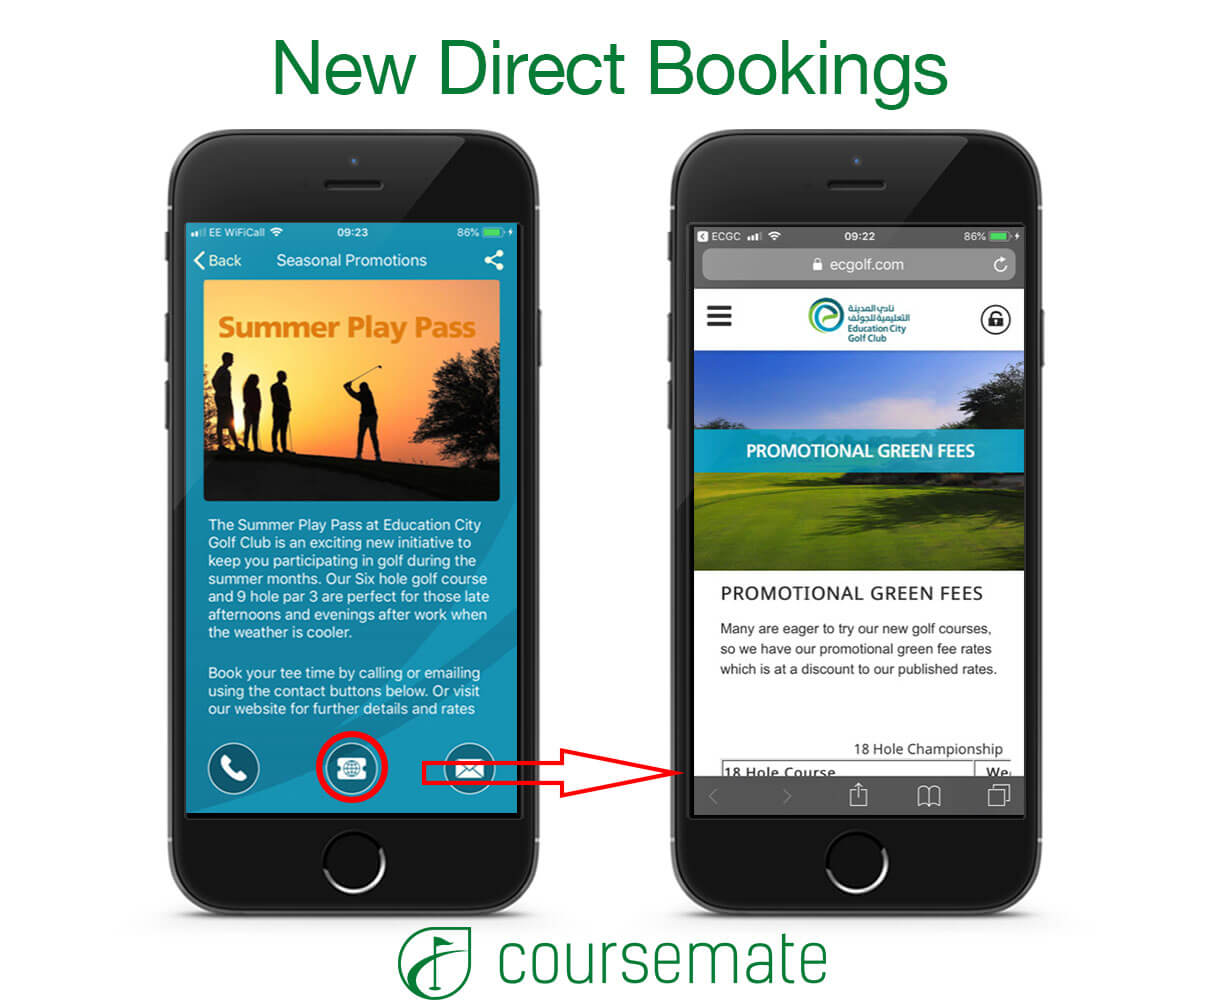 New direct bookings